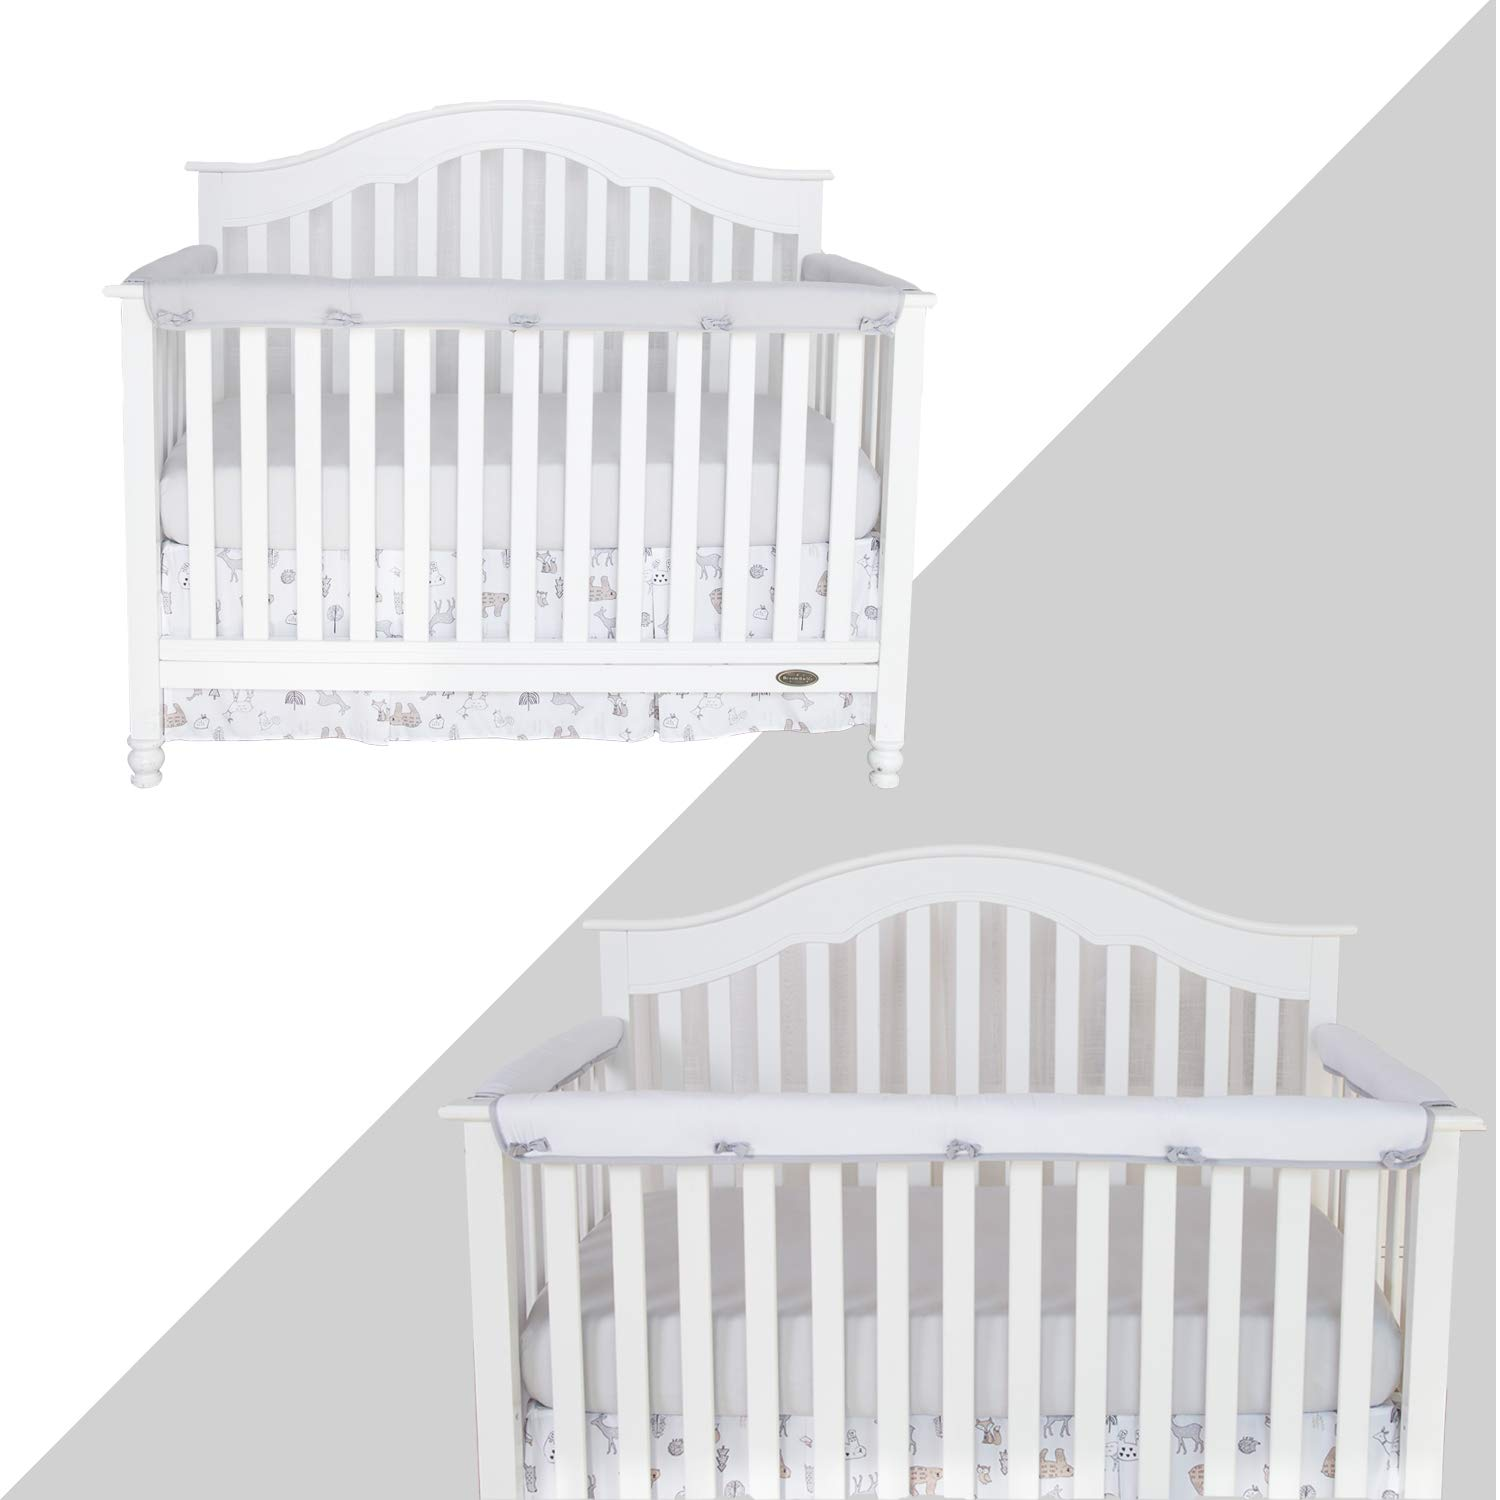 TILLYOU 3-Piece Padded Baby Crib Rail Cover Protector Set from Chewing, Safe Teething Guard Wrap for Standard Cribs, 100% Silky Soft Microfiber Polyester, Fits Side and Front Rails, Pale Gray by TILLYOU (Image #3)